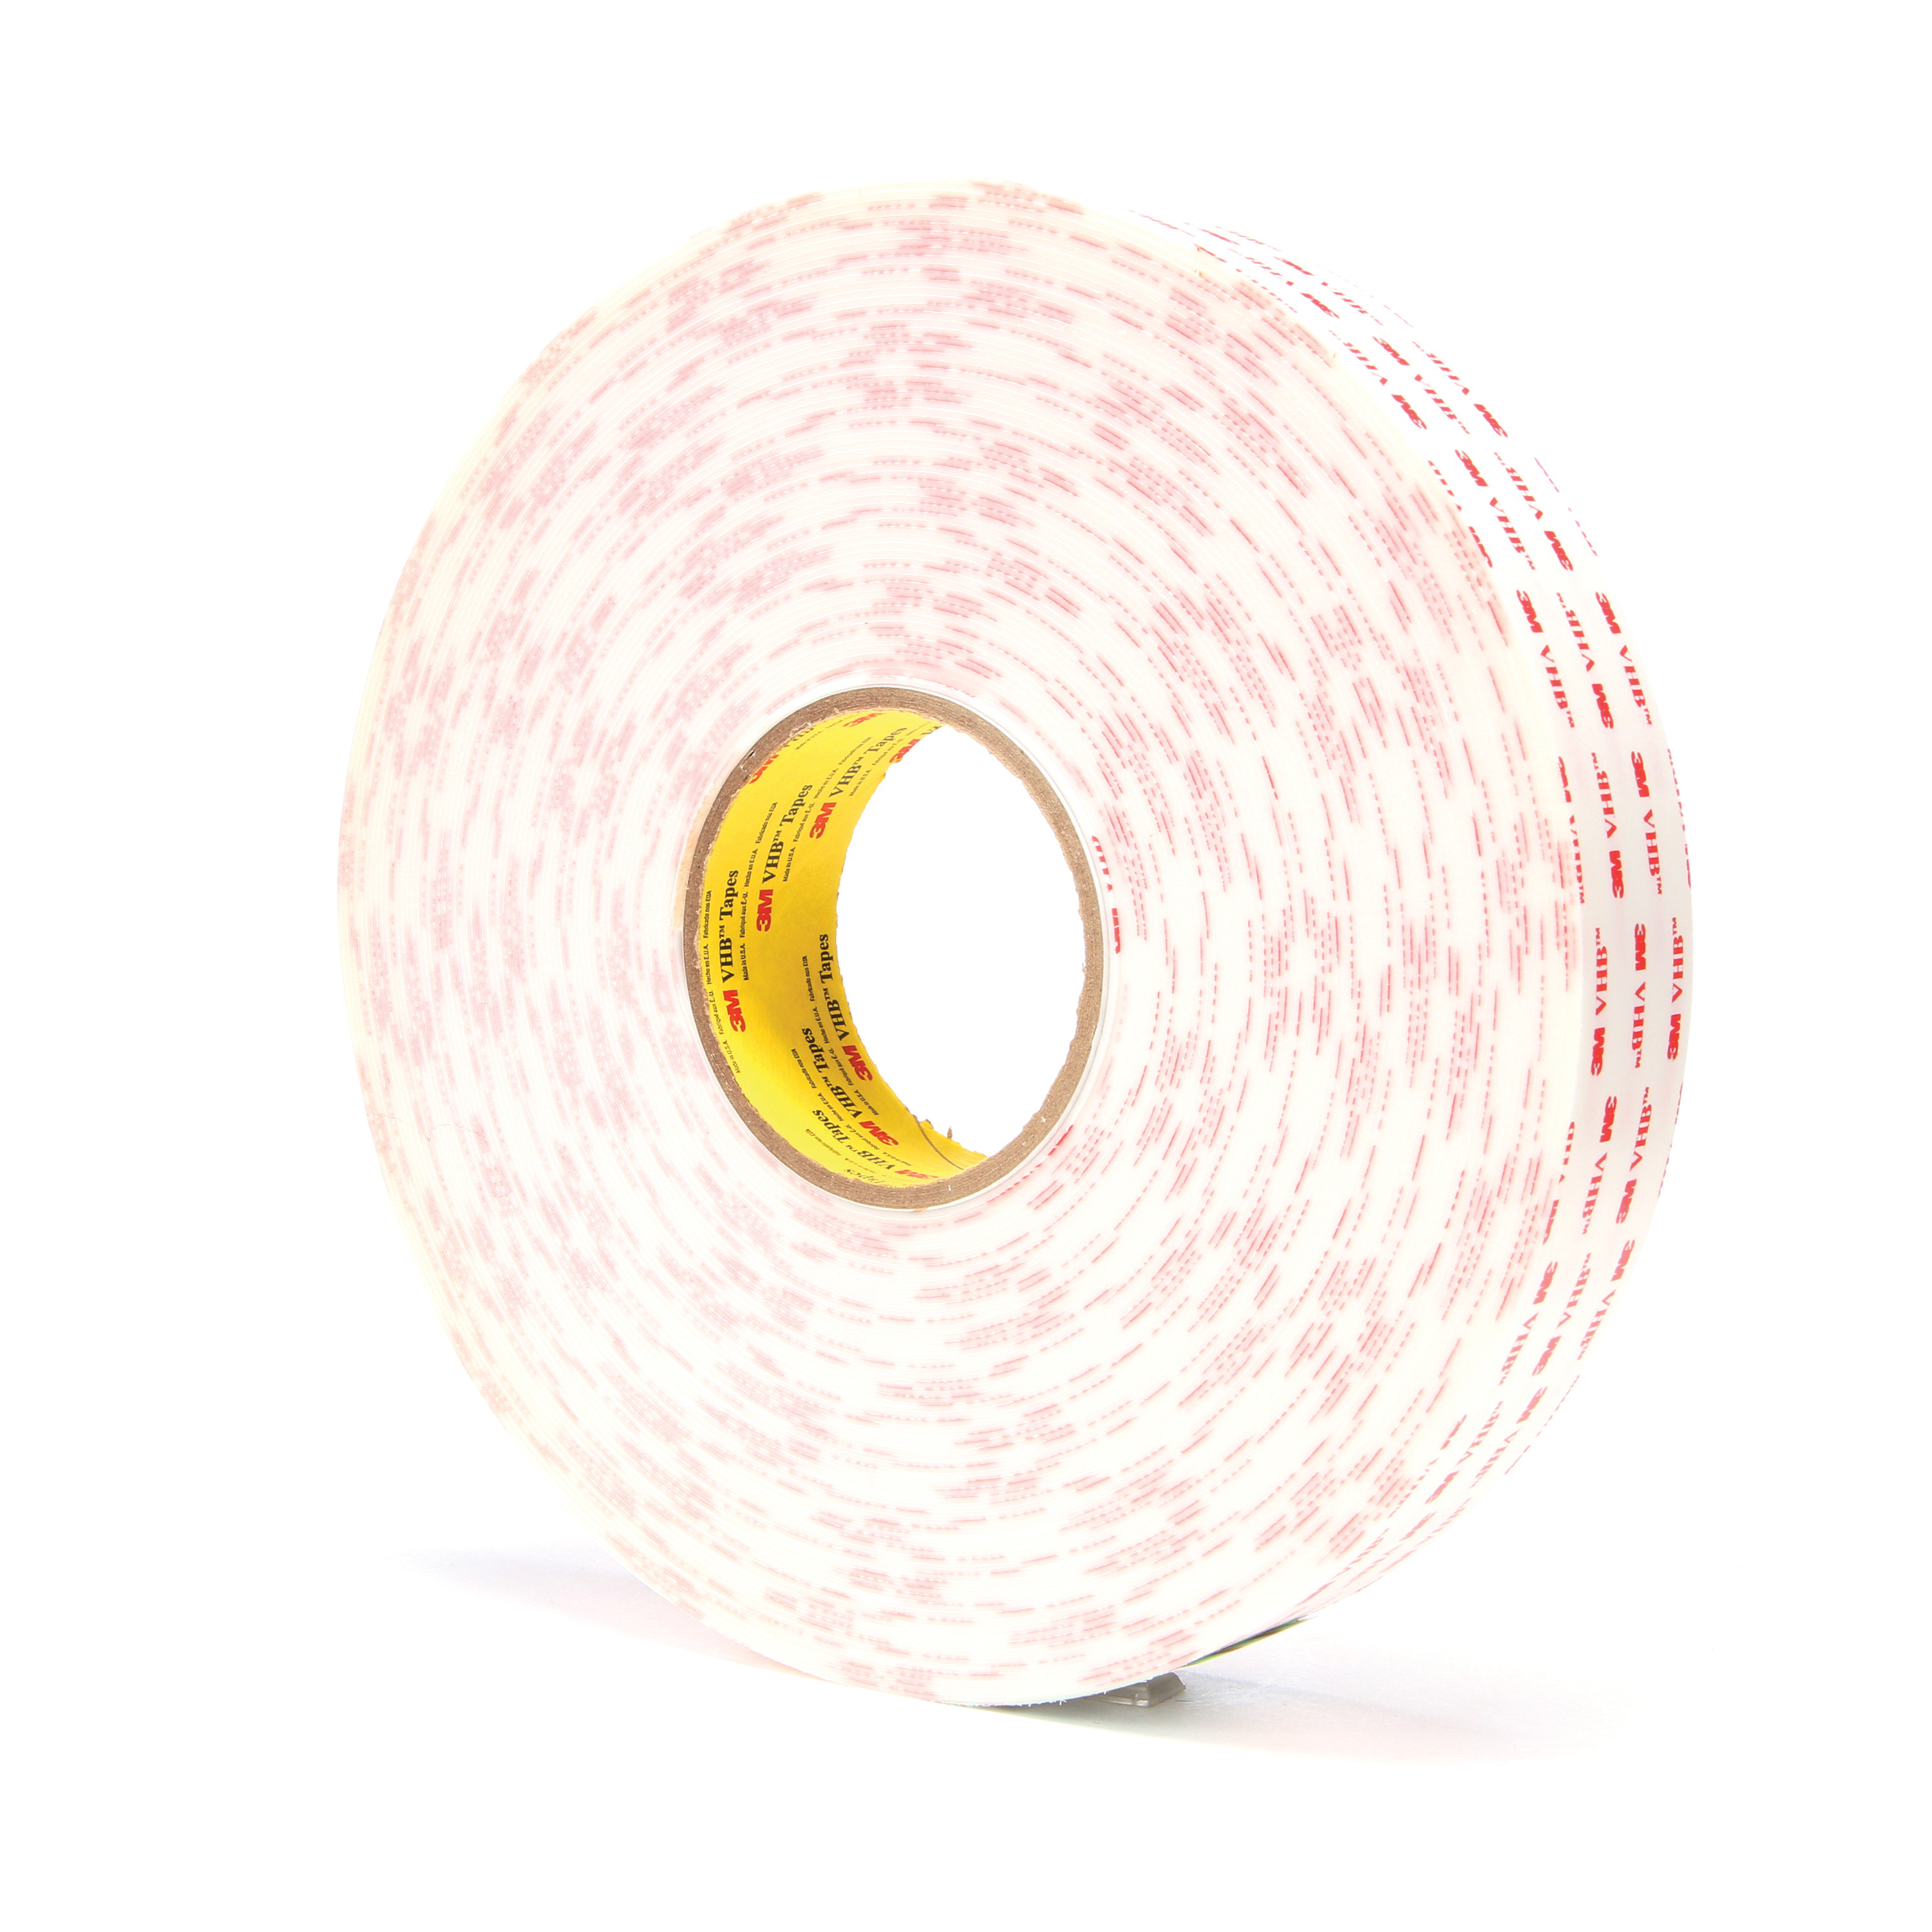 3M™ VHB™ 021200-39392 Pressure Sensitive Double Sided Bonding Tape, 36 yd L x 1-1/2 in W, 0.045 in THK, General Purpose Acrylic Adhesive, Acrylic Foam Backing, White